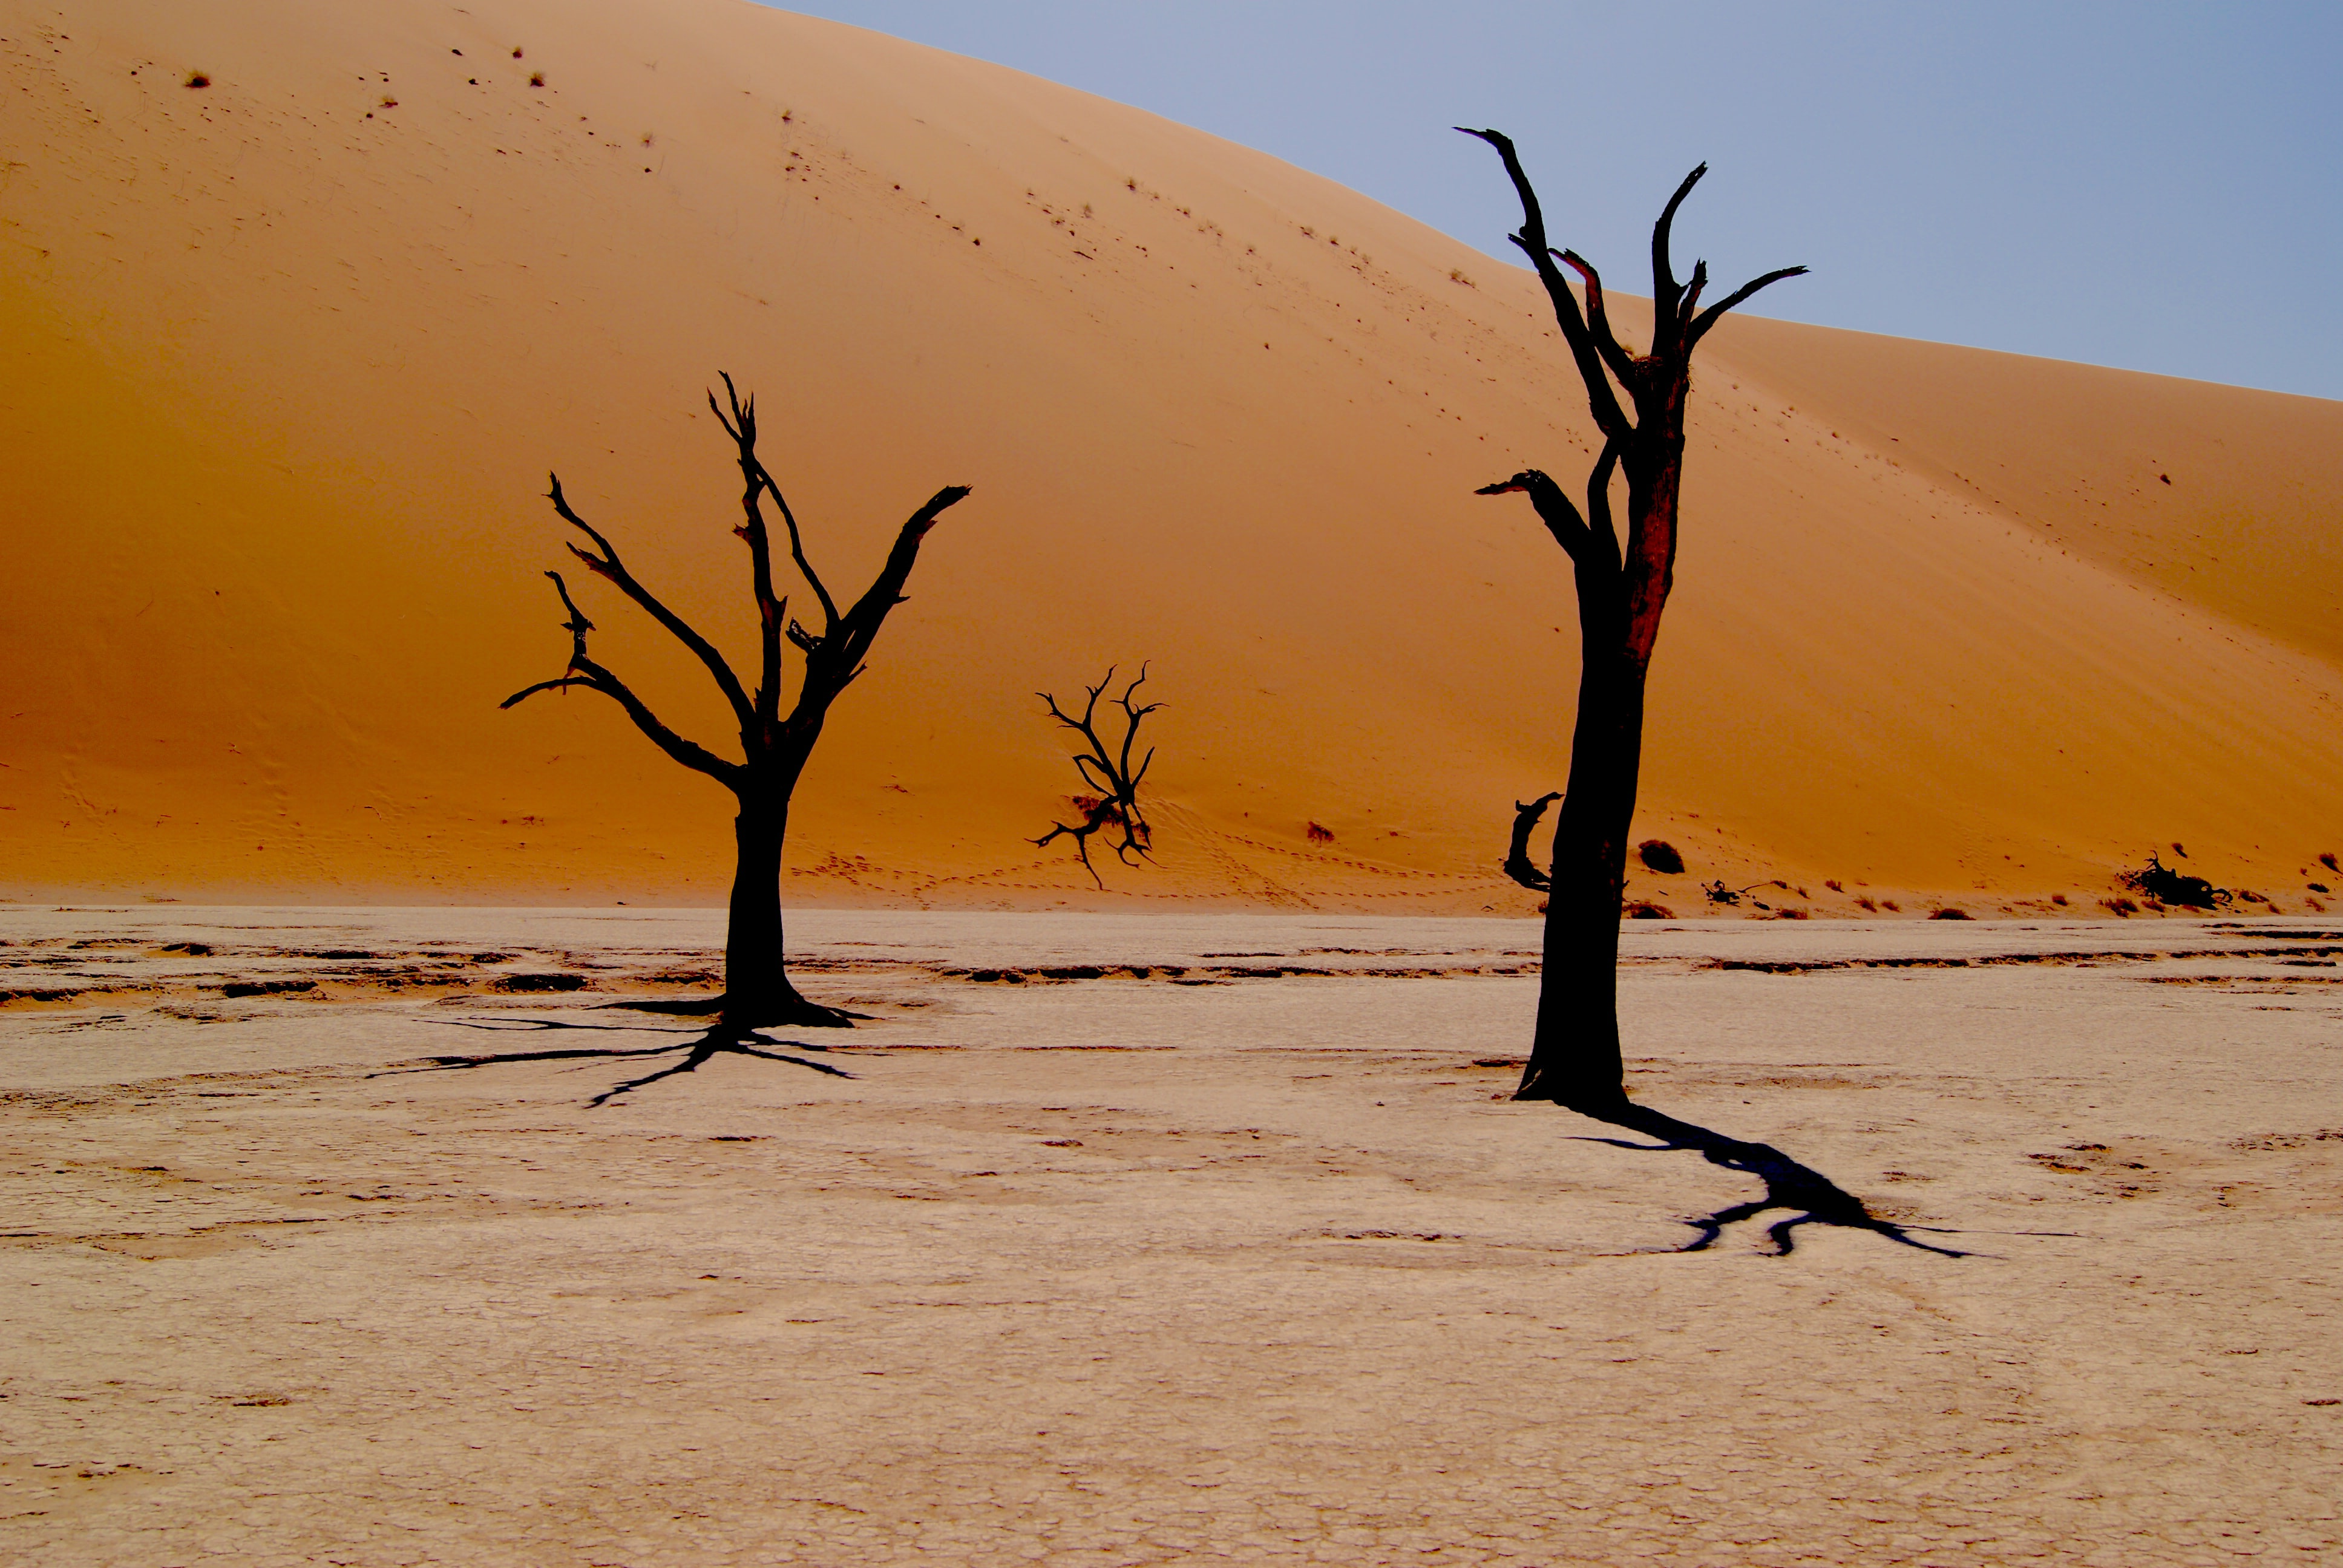 Desolate trees in the sandy desert of Deadvlei Hiking Trail